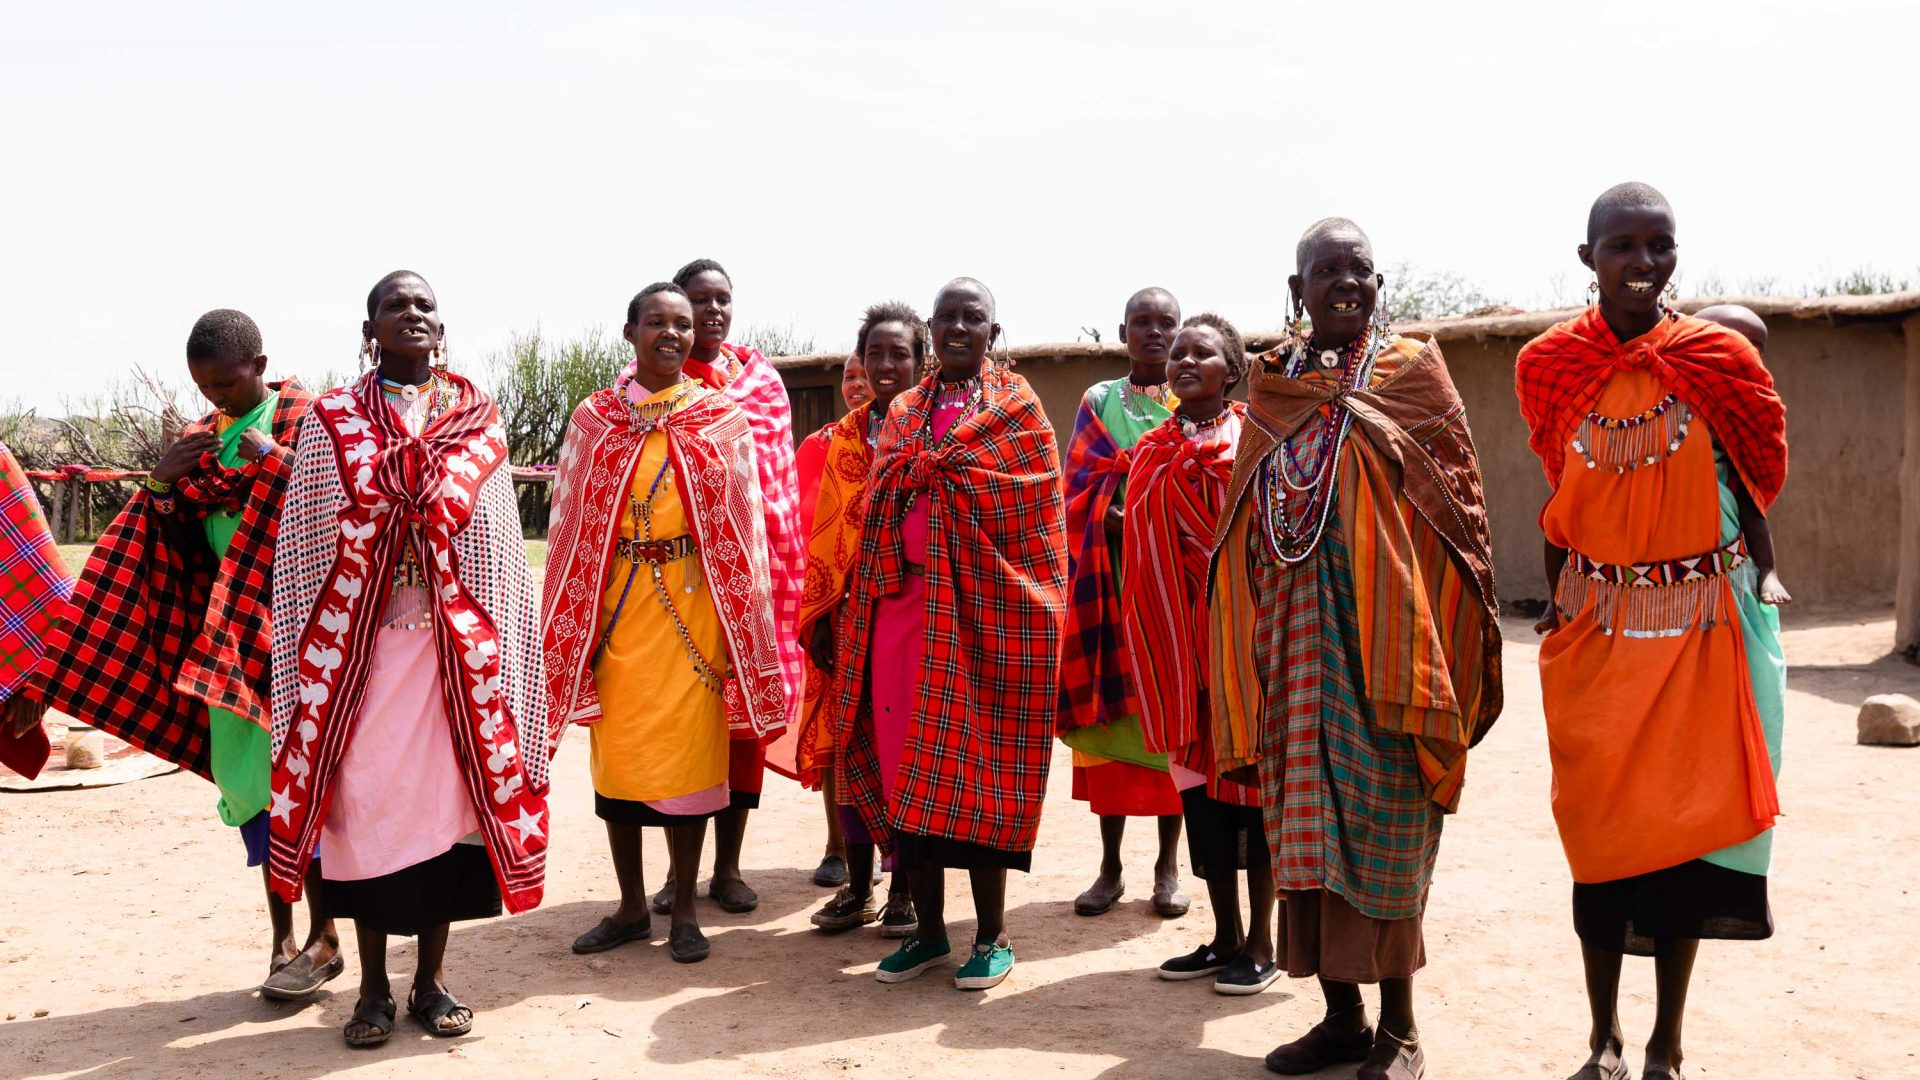 The Maasai school teacher using tourism to empower women